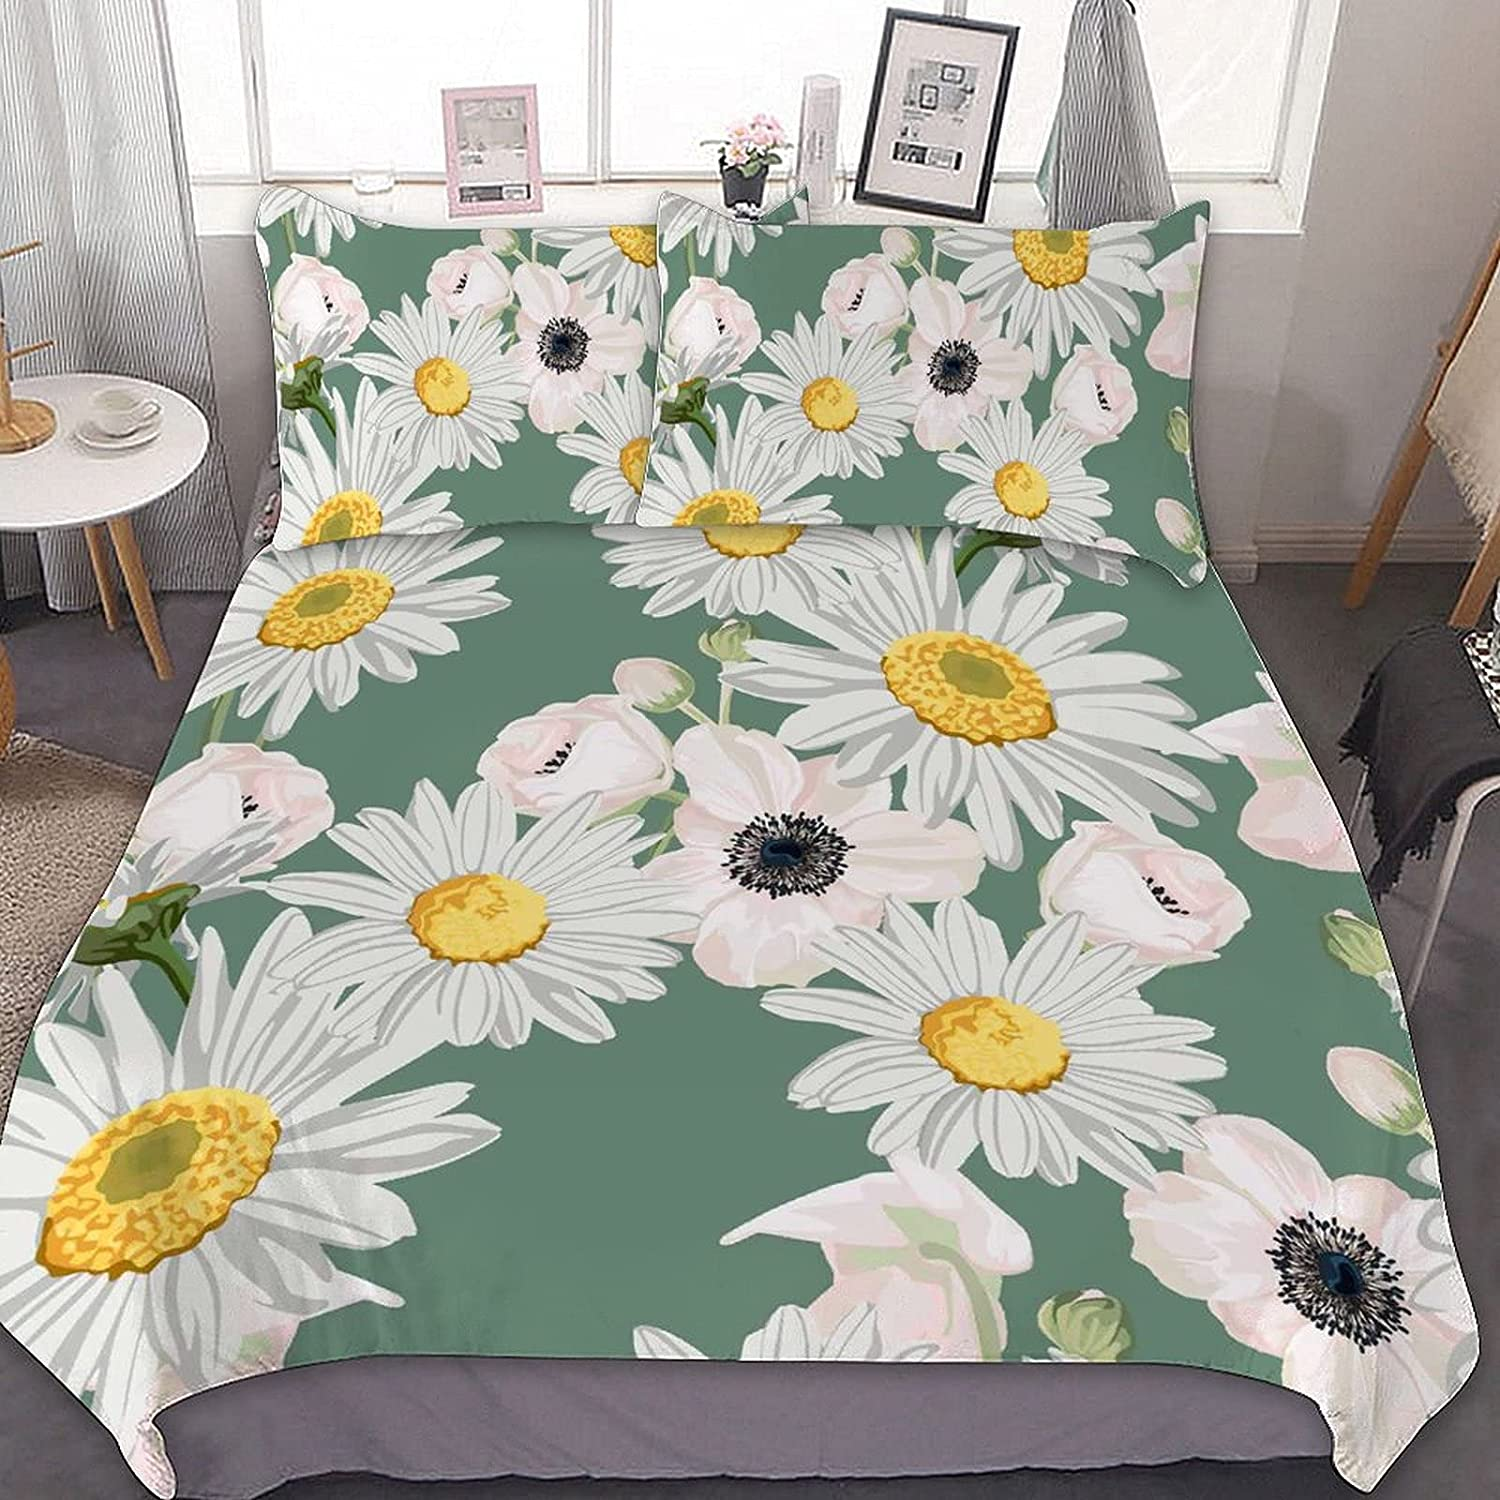 Leaves and Anemones Virginia Beach Mall Flowers Tucson Mall Bedding Piece Bag Set Sets 3